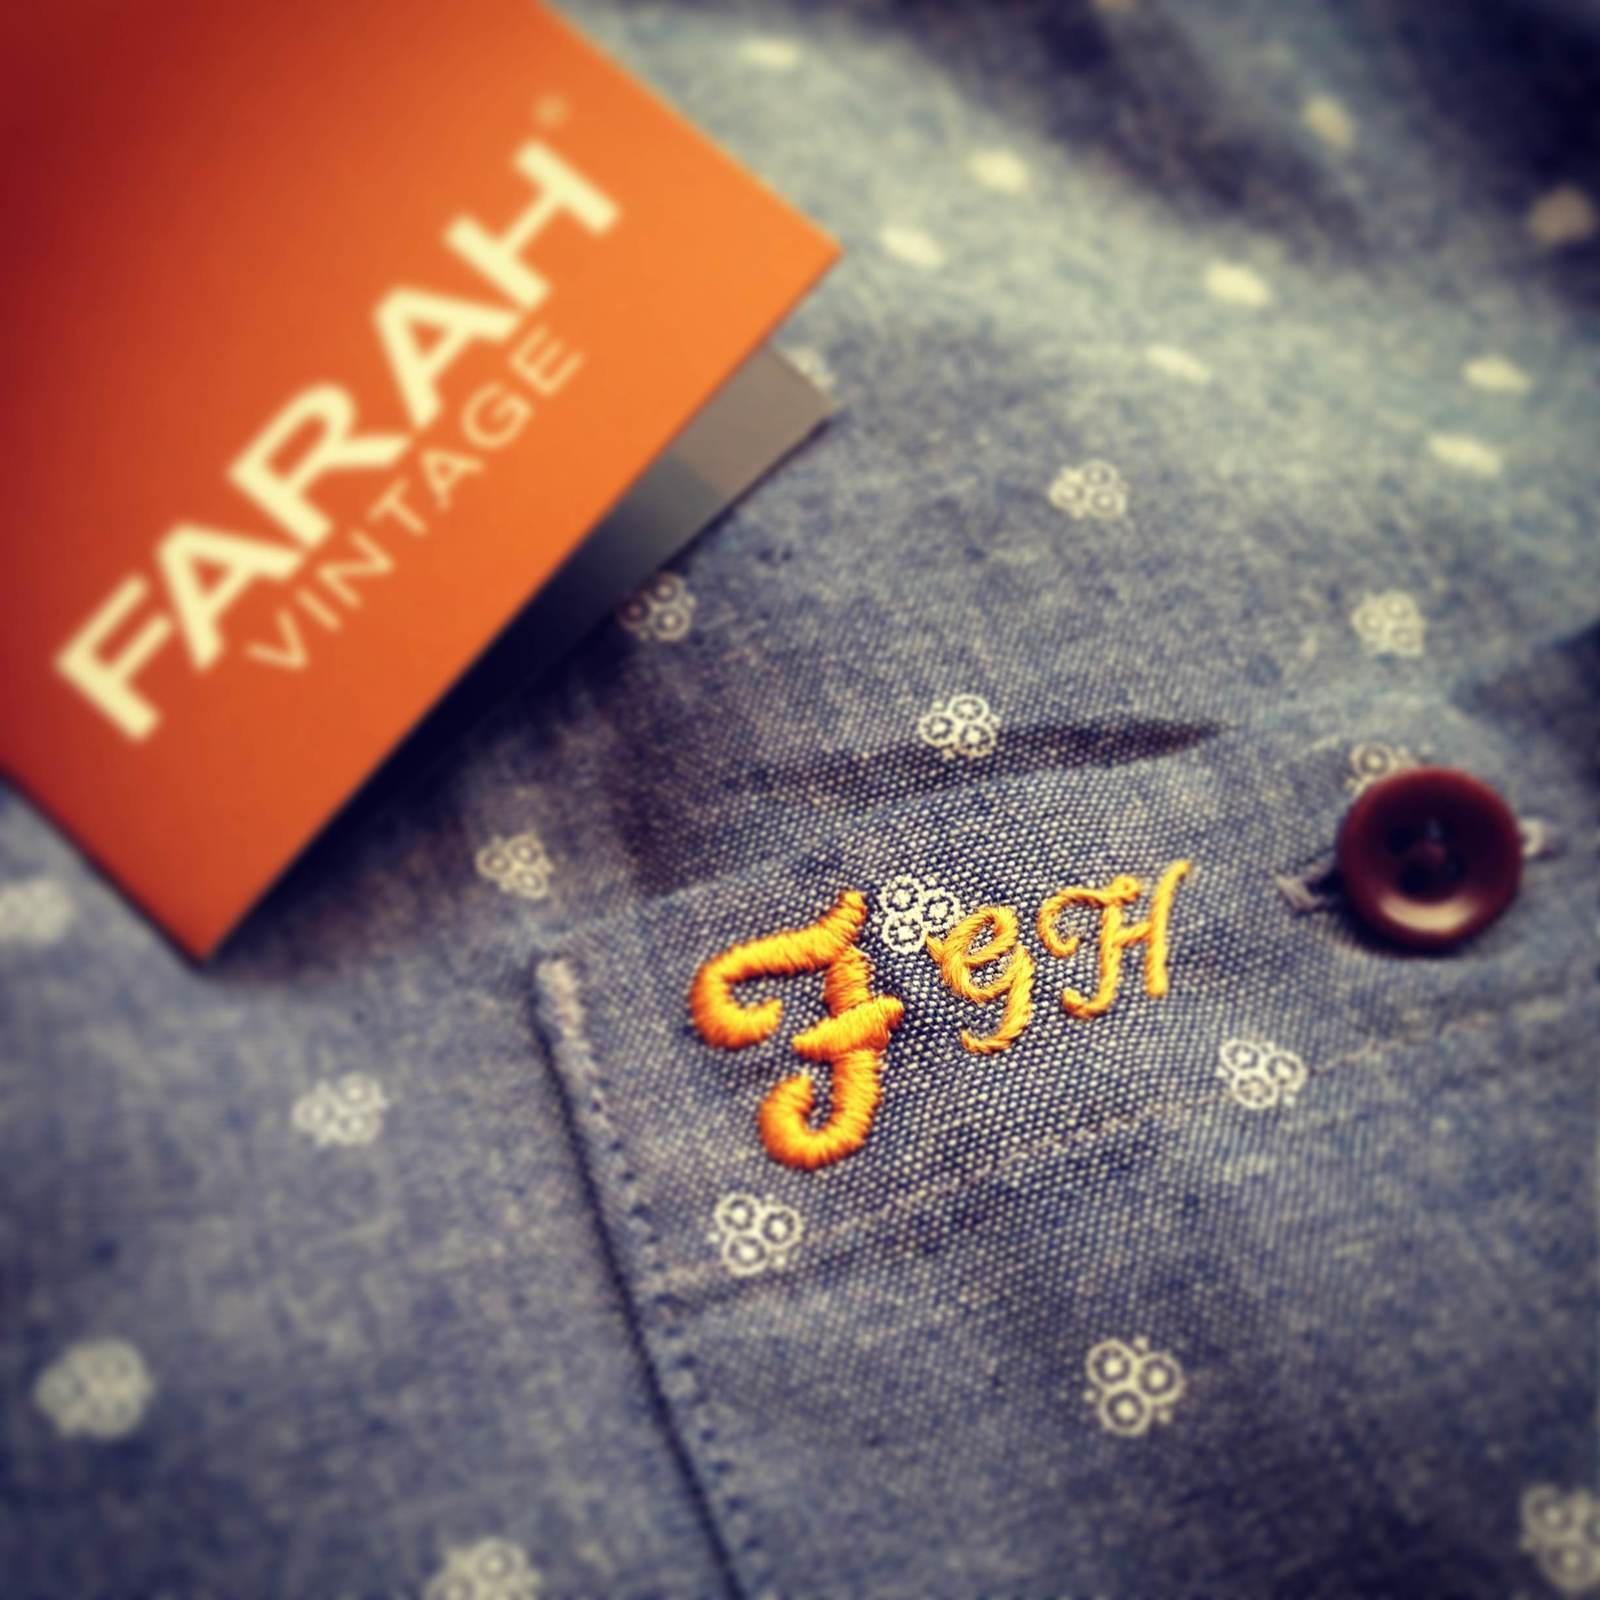 Hawthorne & Heaney Events presents… Monogramming @ Farah Vintage London Hand Embroidery